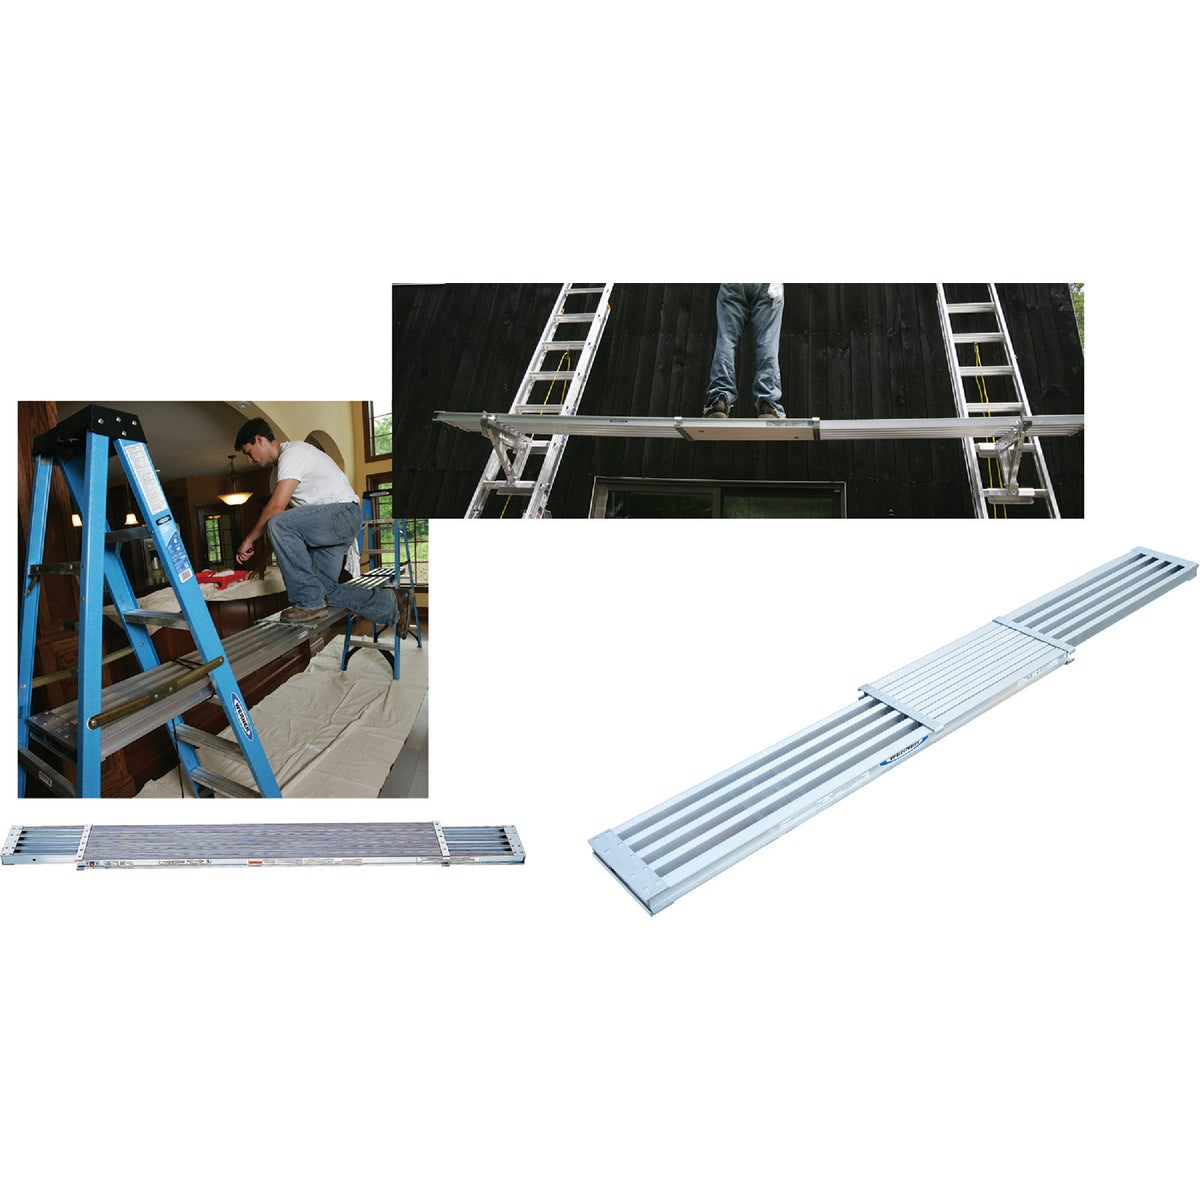 T-1 13' EXTENSION PLANK - PA208 by Werner Ladder